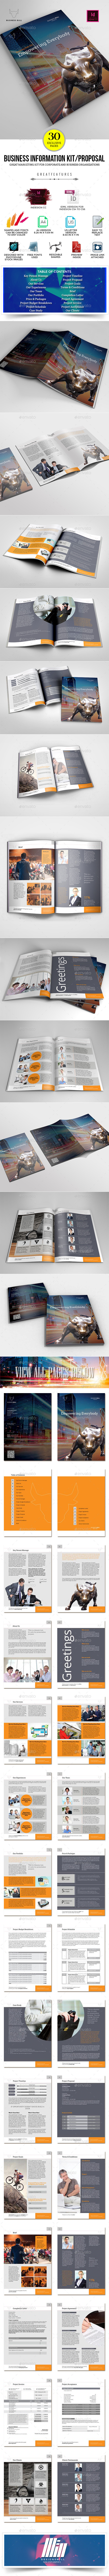 GraphicRiver Business Bull Information Kit and Proposal 10658917